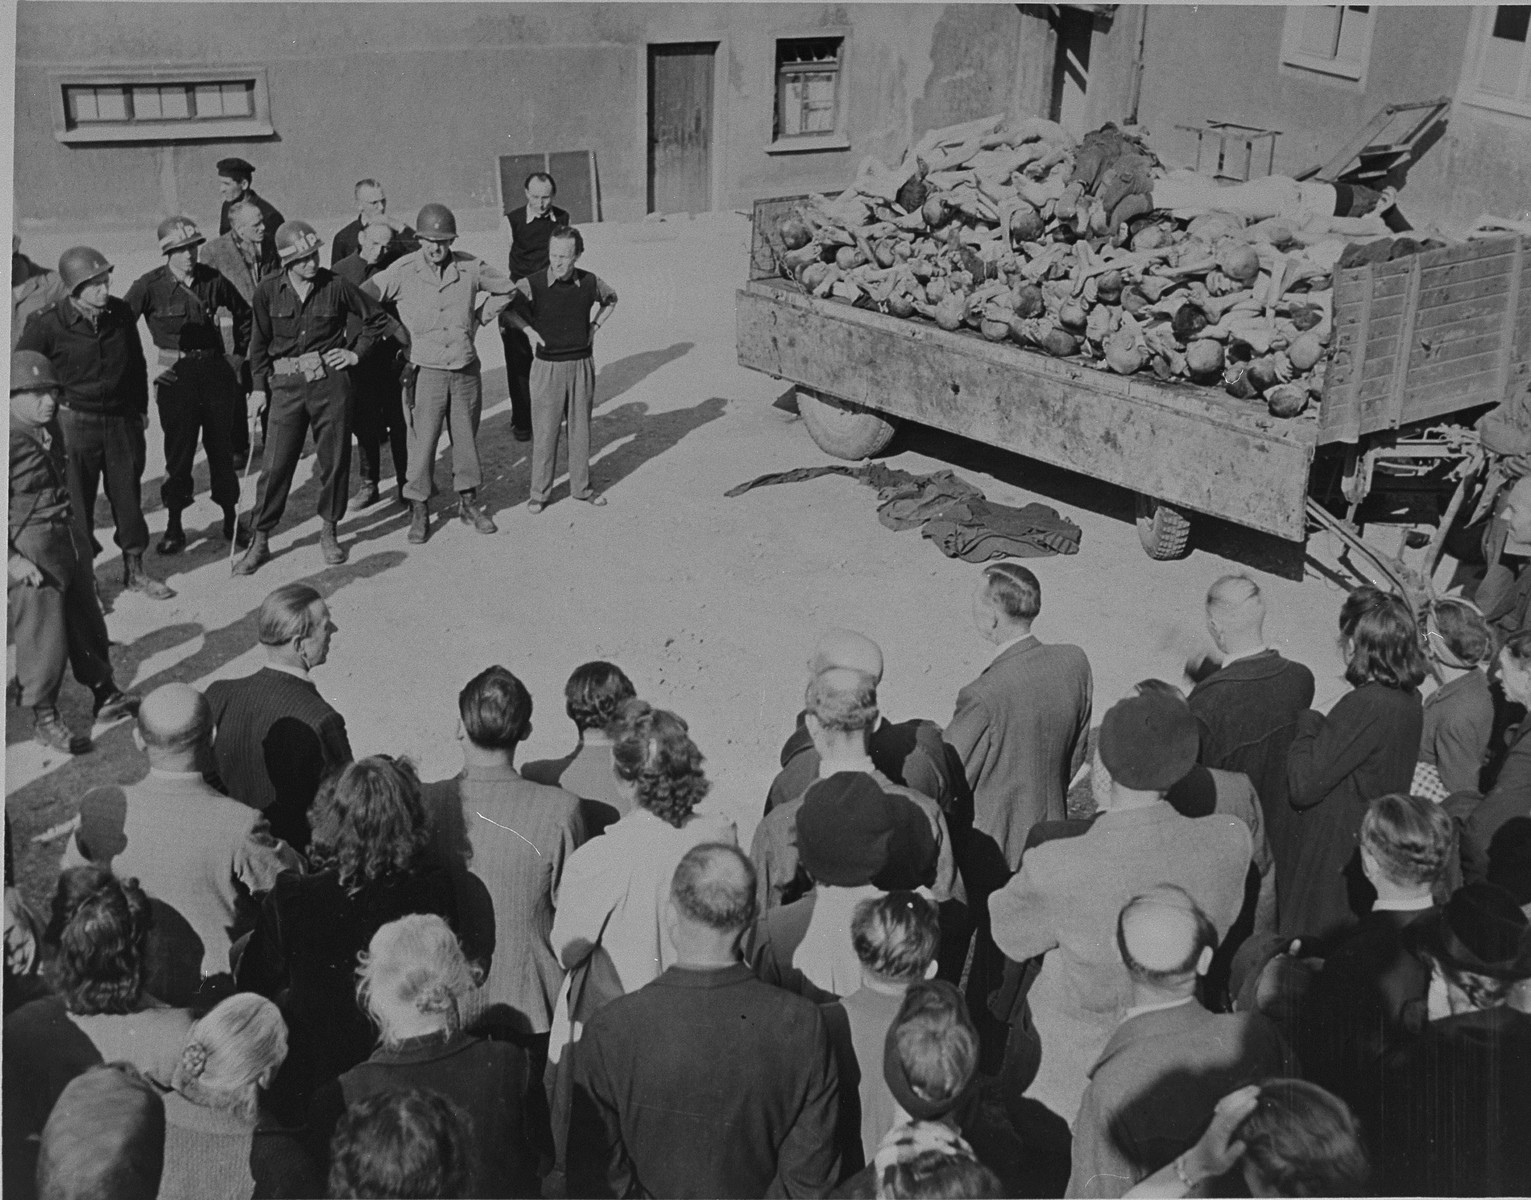 "German civilians under U.S. military escort are forced to view a wagon piled with corpses in the newly liberated Buchenwald concentration camp.  Original caption reads:  ""German civilians are forced to look at a truckload of dead Allied and political prisoners at Buchenwald camp.  Under U.S. military escort, the civilians were forced to view all the evidence of atrocities in the camp."""